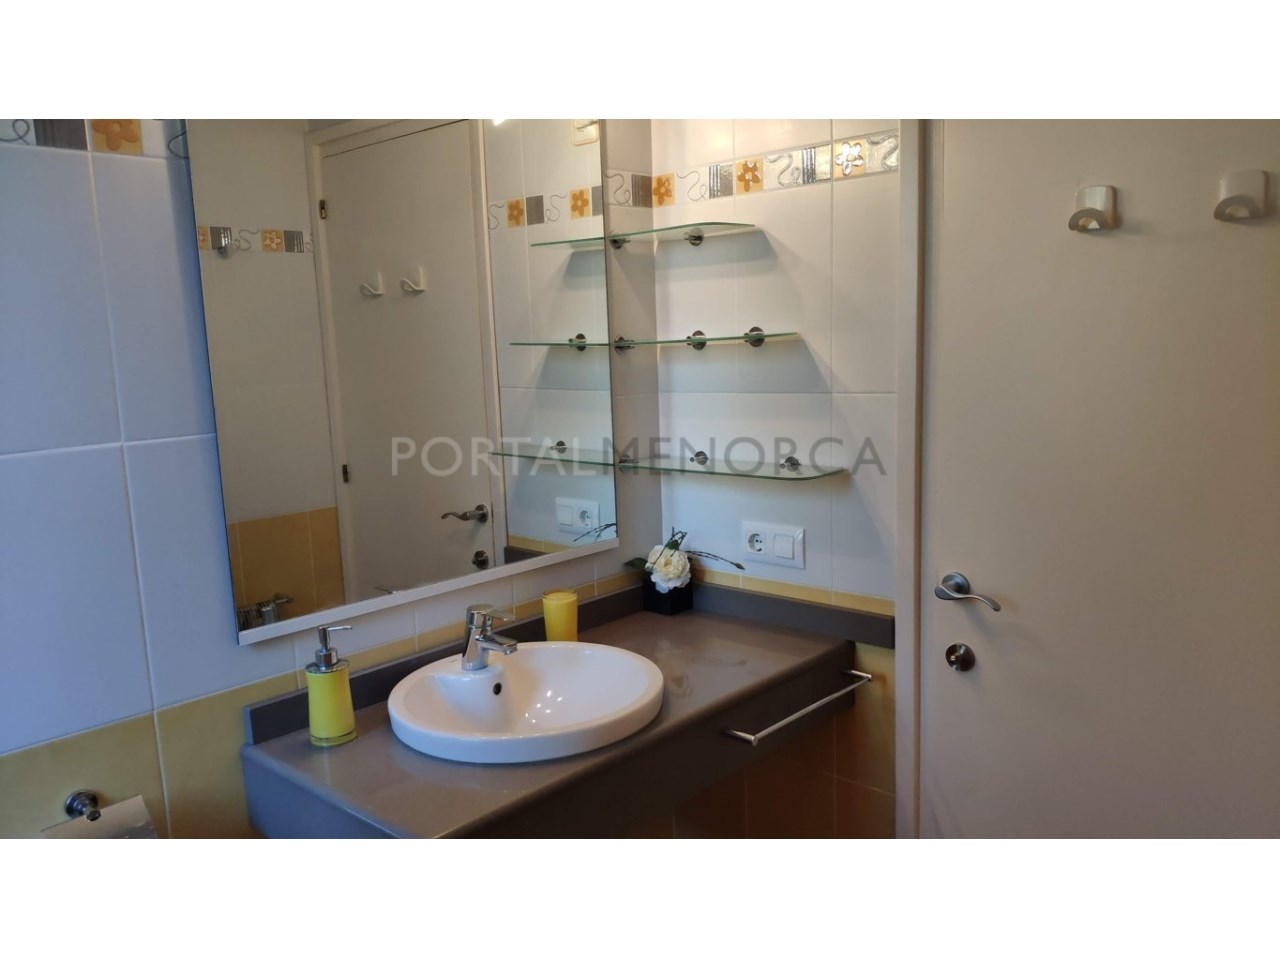 Townhouse for sale in Calan Blanes near the beach- Bedroom